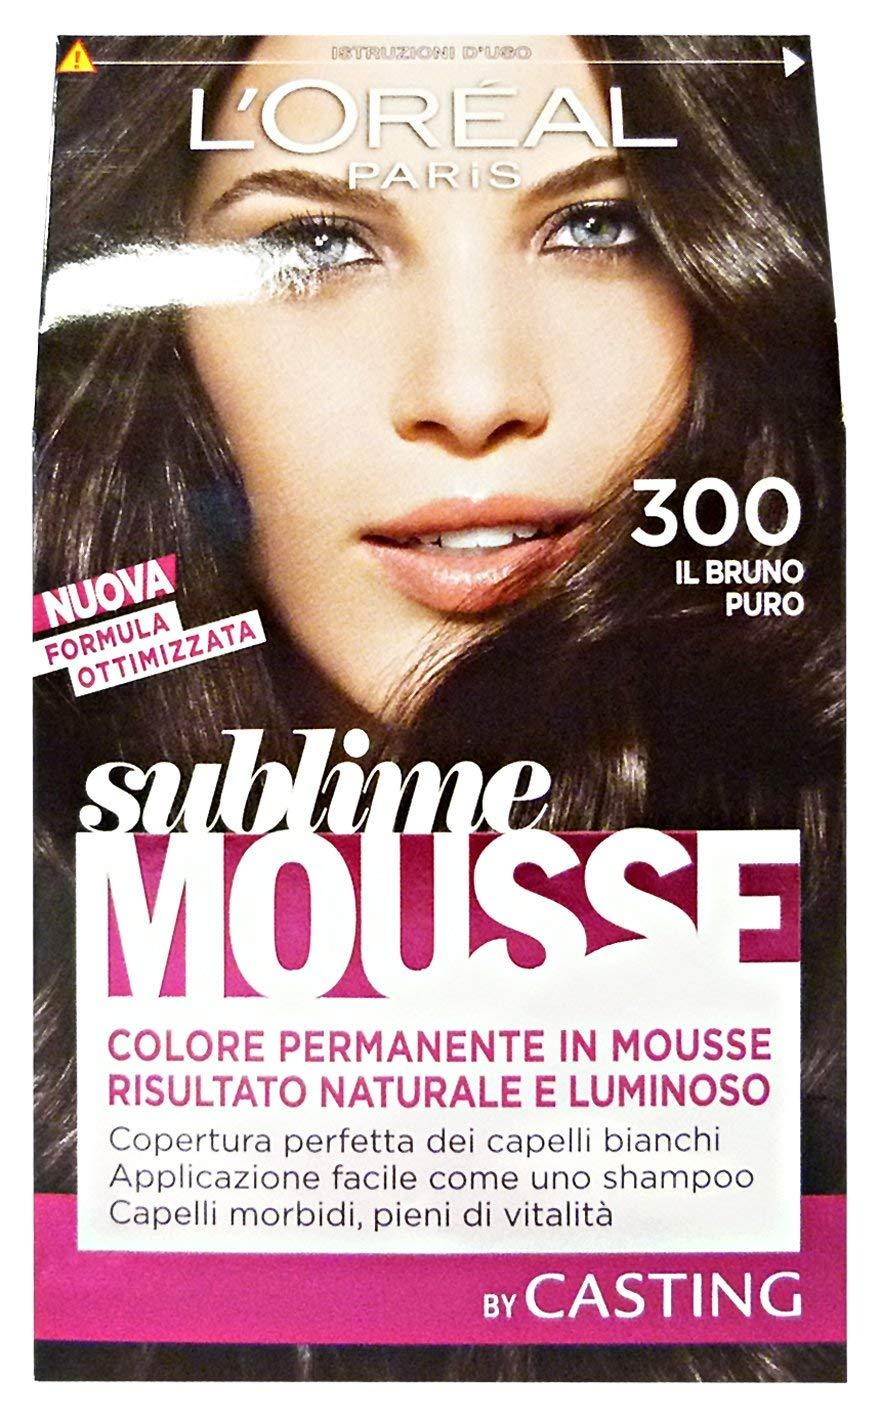 Loreal Paris - Permanent color Sublime Mousse -IL BRUNO PURO 300